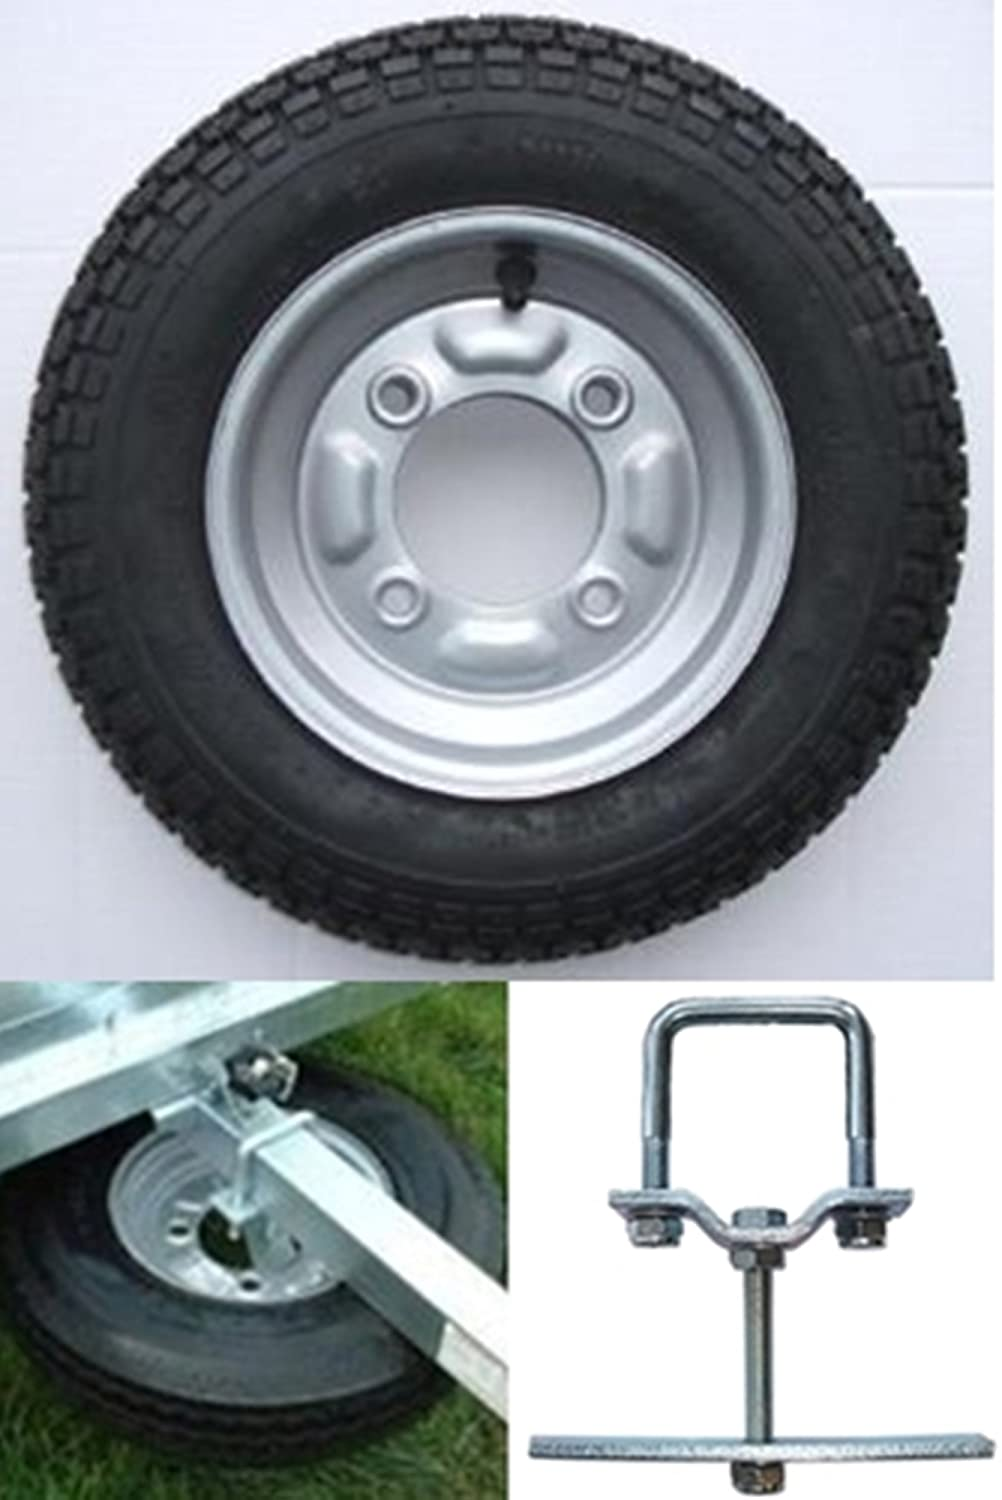 leisure MART 3.50 x 8 inch trailer wheel and tyre with 4 ply tyre and 115mm PCD for Erde 102 and Maypole 711 complete with SPARE WHEEL CARRIER Pt no. LMX1752